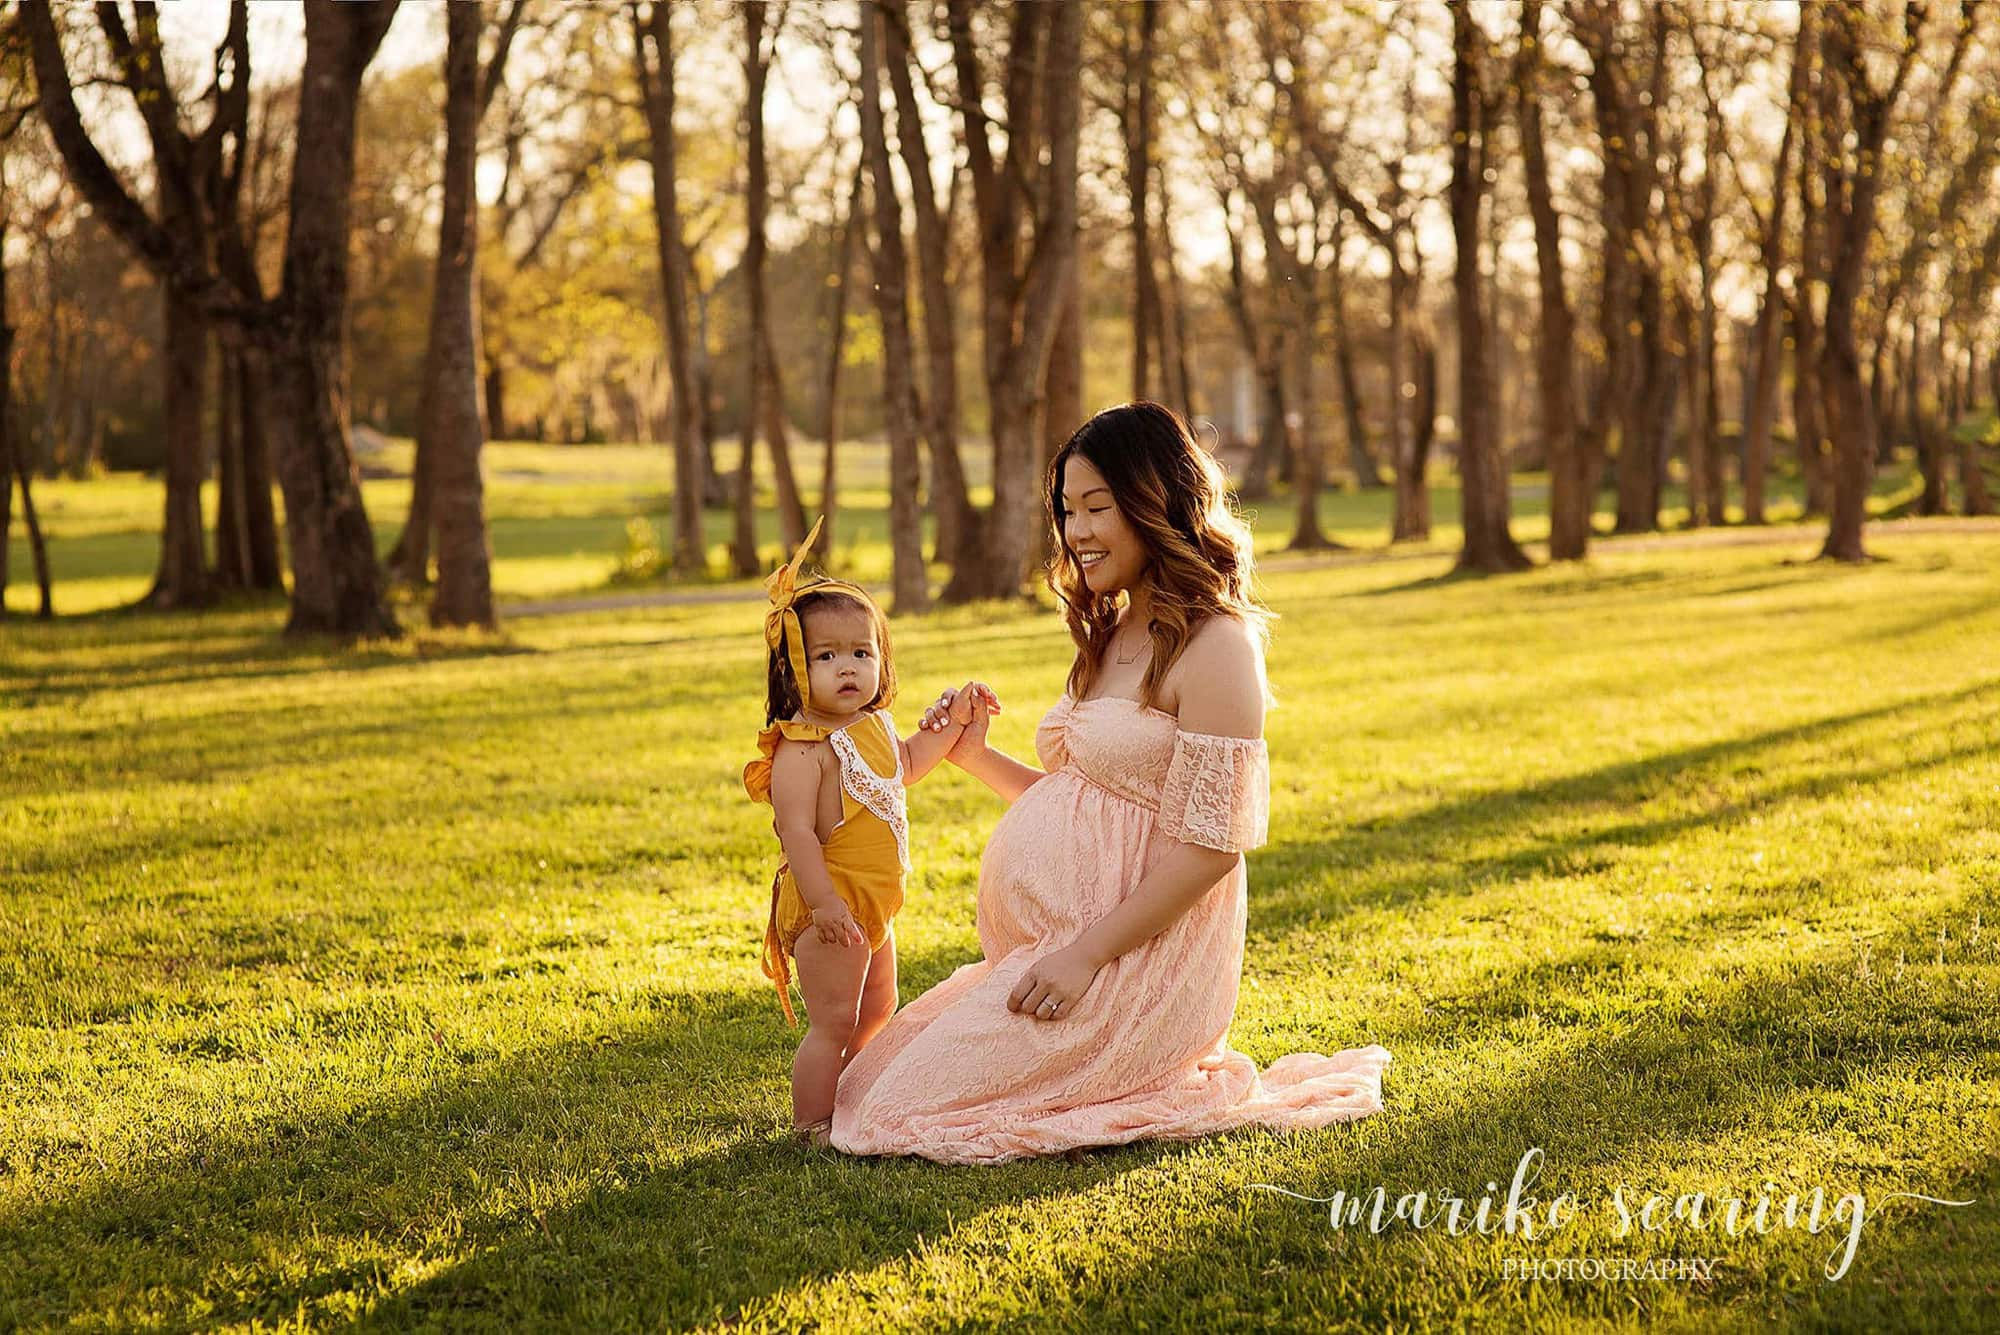 Baton Rouge maternity newborn photographer mariko searing photography maternity pregnant woman sitting with daughter in the park